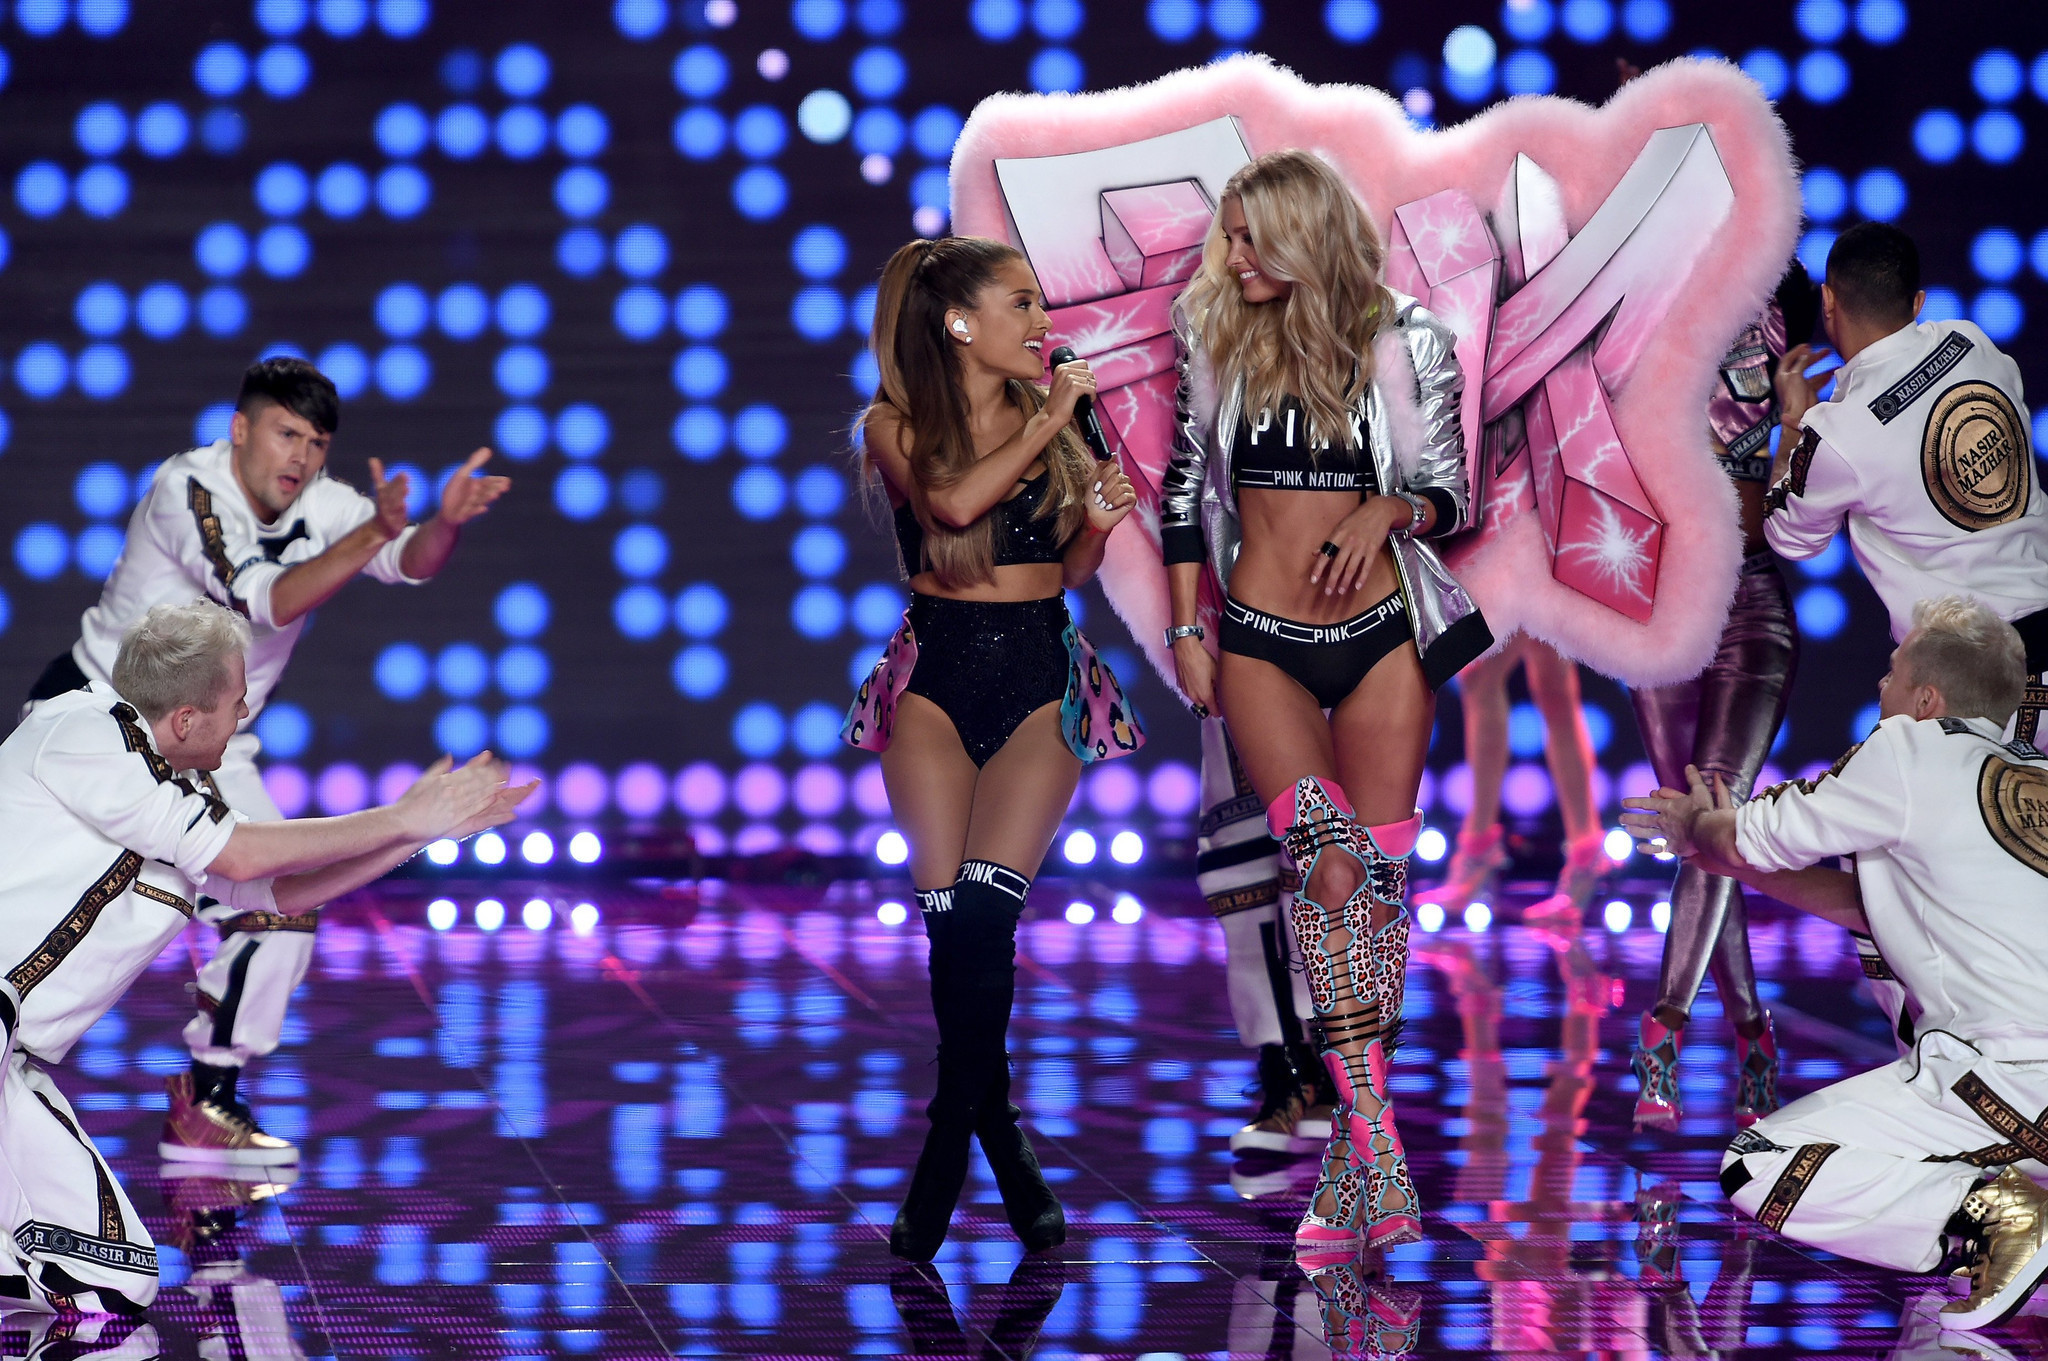 Ariana Grande Victoria Secret Fashion Show Ariana Grande gets smacked in